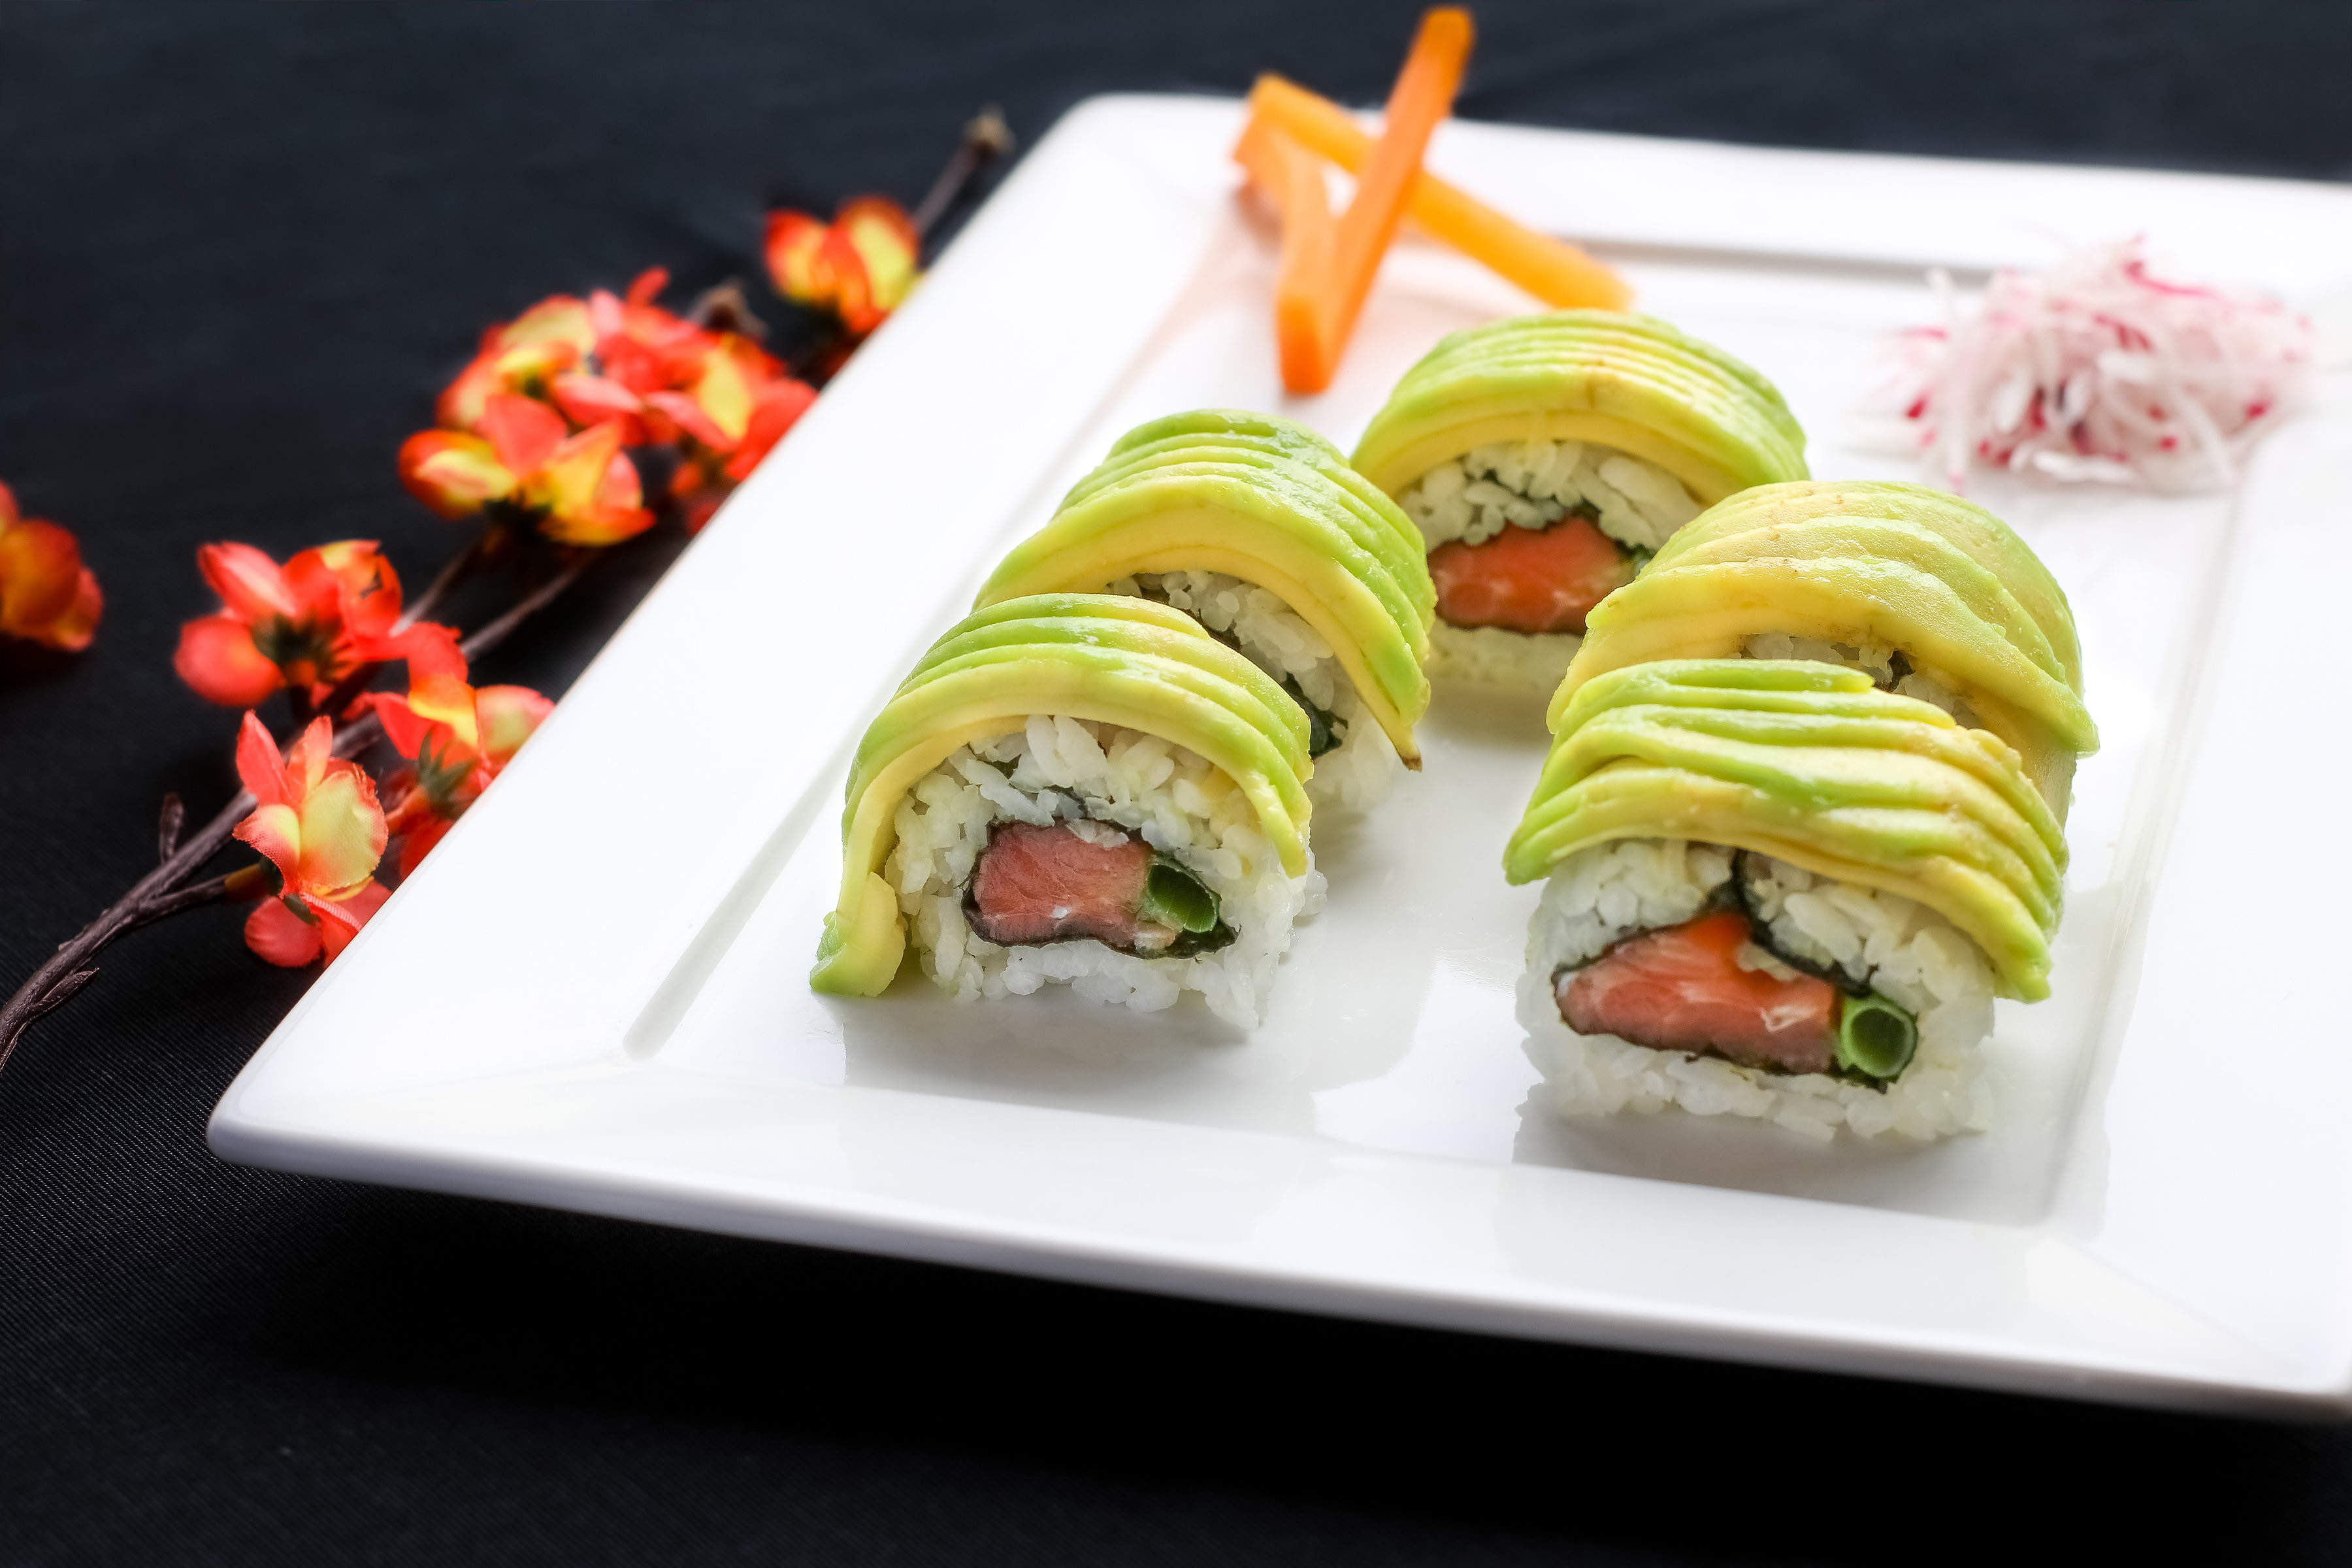 Plate of Sushi Free Photo – Foodie Factor